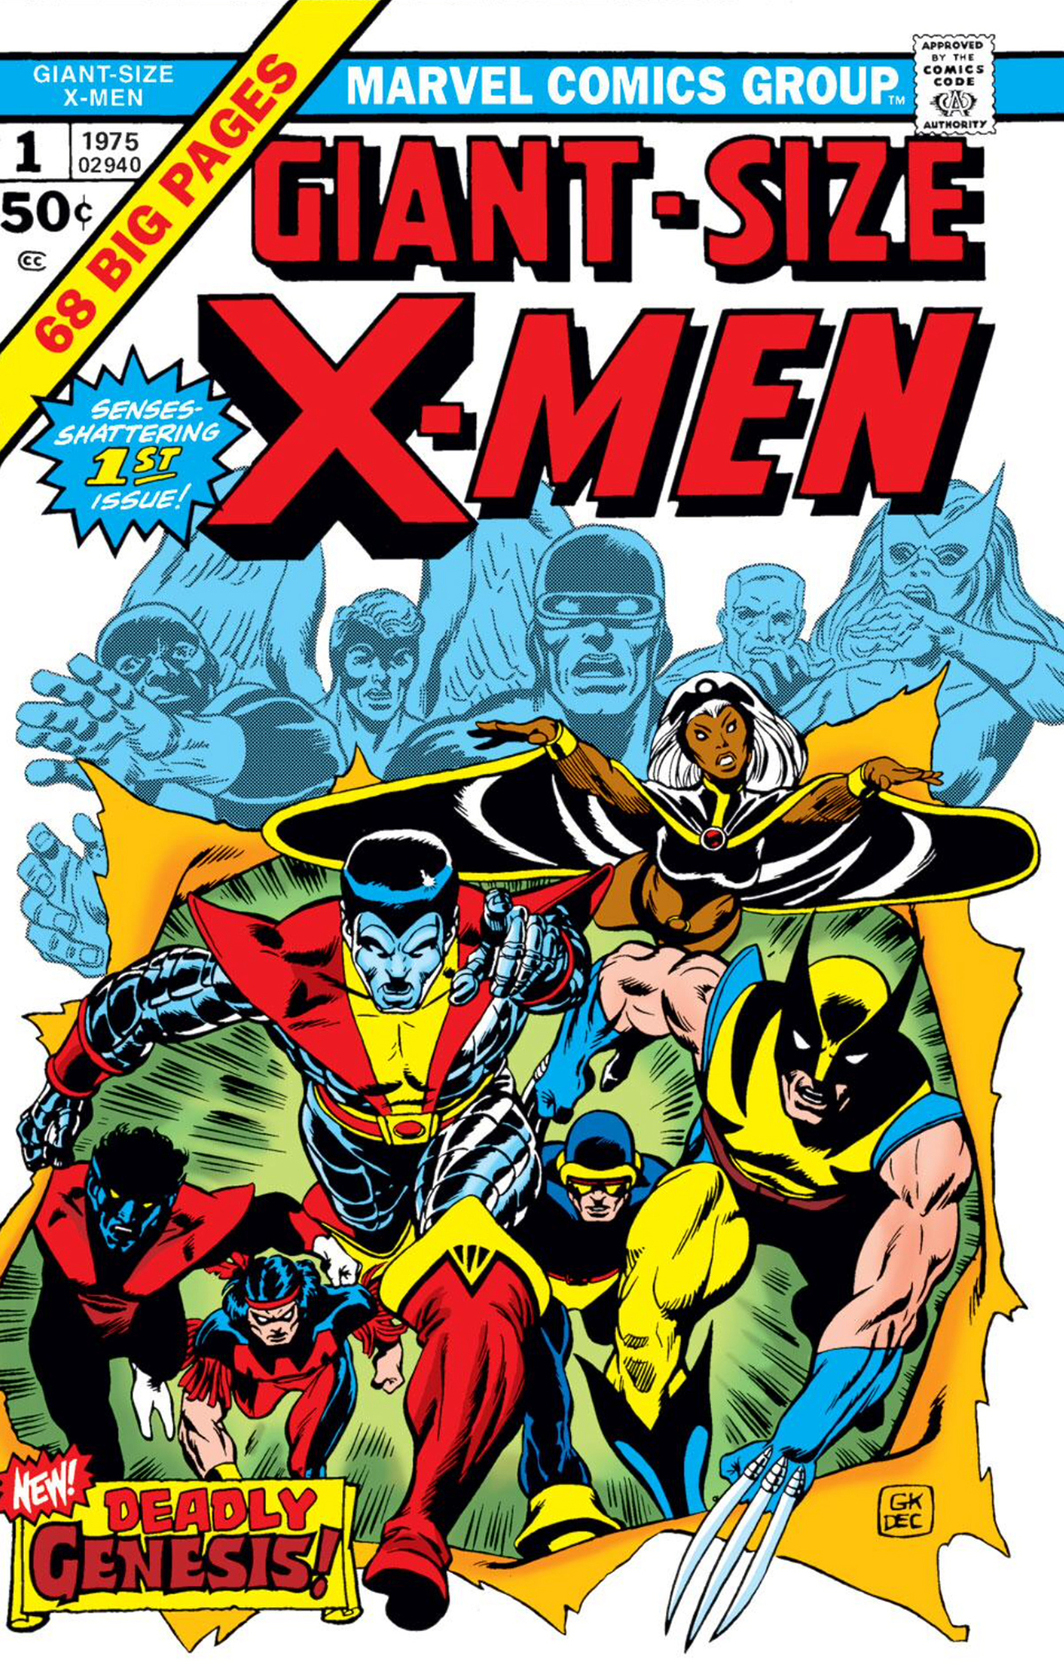 Cover of Giant-Size X-Men #1 (Marvel, 1975).